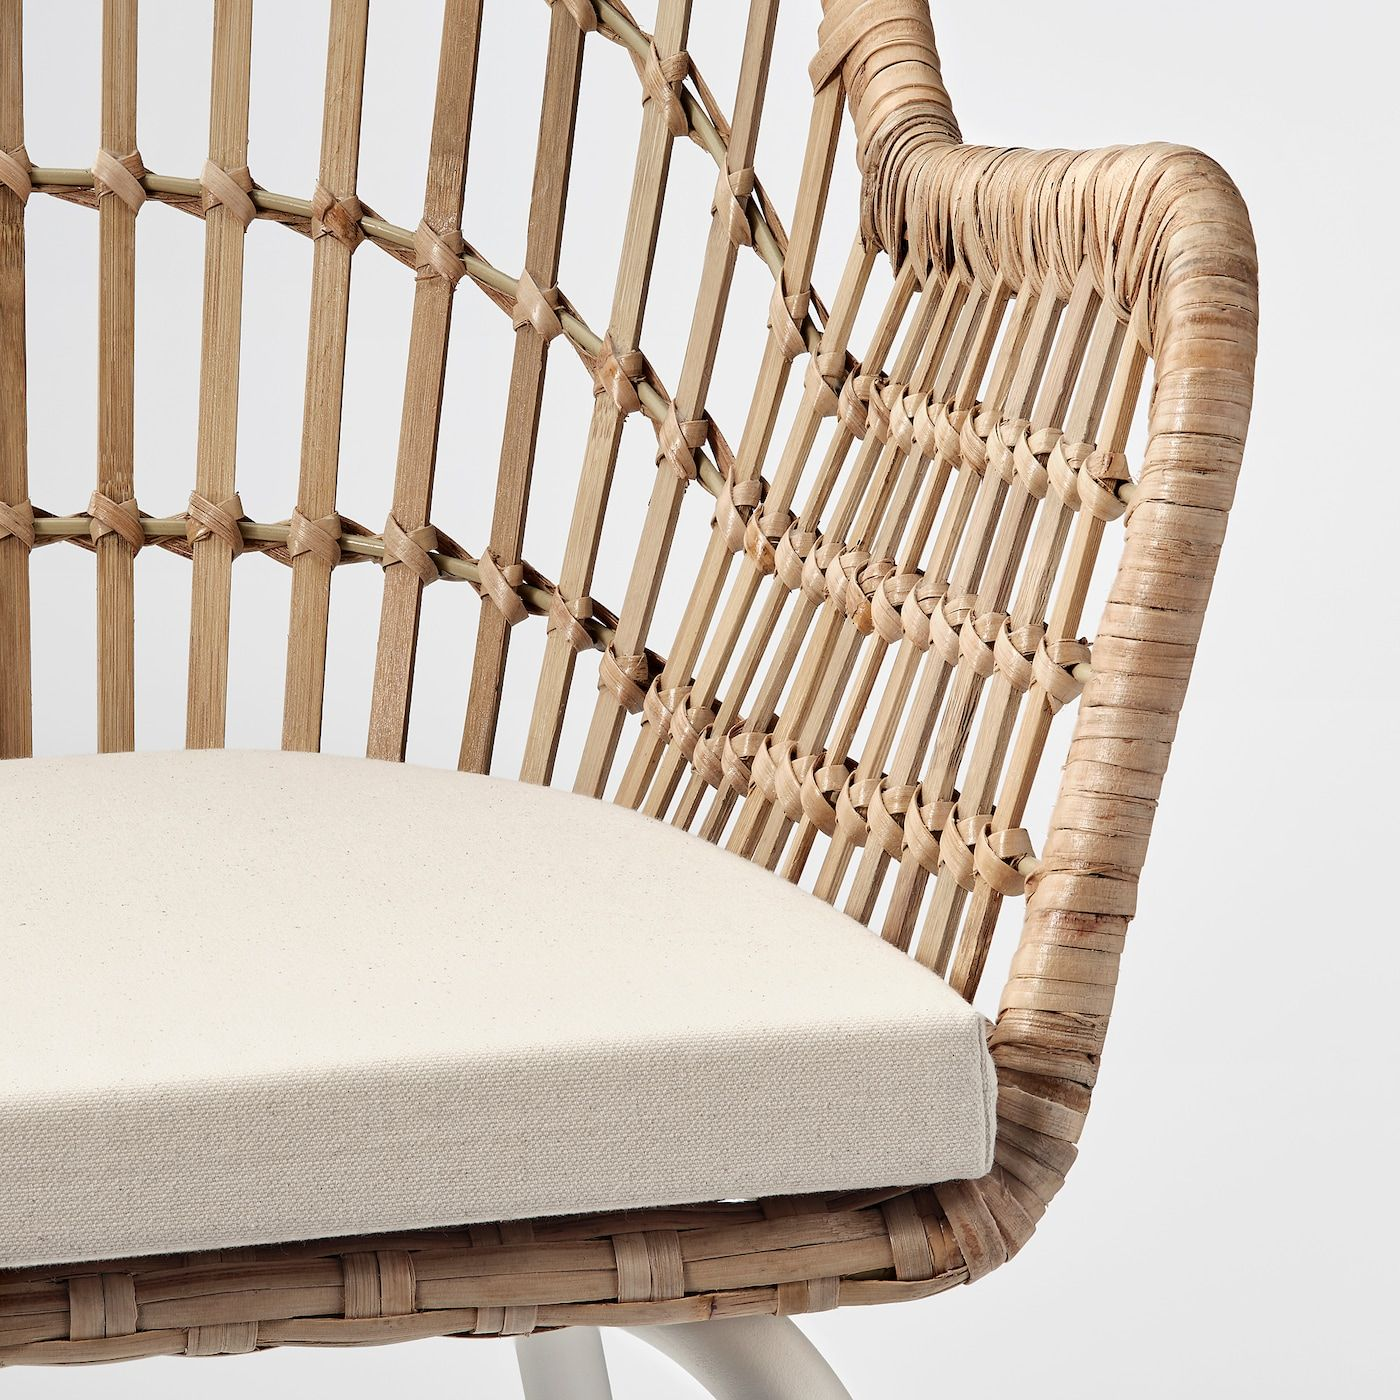 Hand-woven by experienced craftspeople, which makes each chair unique with their rounded shapes and detailed patterns. Rattan and bamboo are natural materials which age beautifully and develop their own unique characters over time. The armrest is designed to provide support when you lean back and allows you to sit close to the table when eating. The seat shell has a closed woven seat to bear more weight, and a backrest designed to create an airy and clean look. Lightweight, easy to lift and move